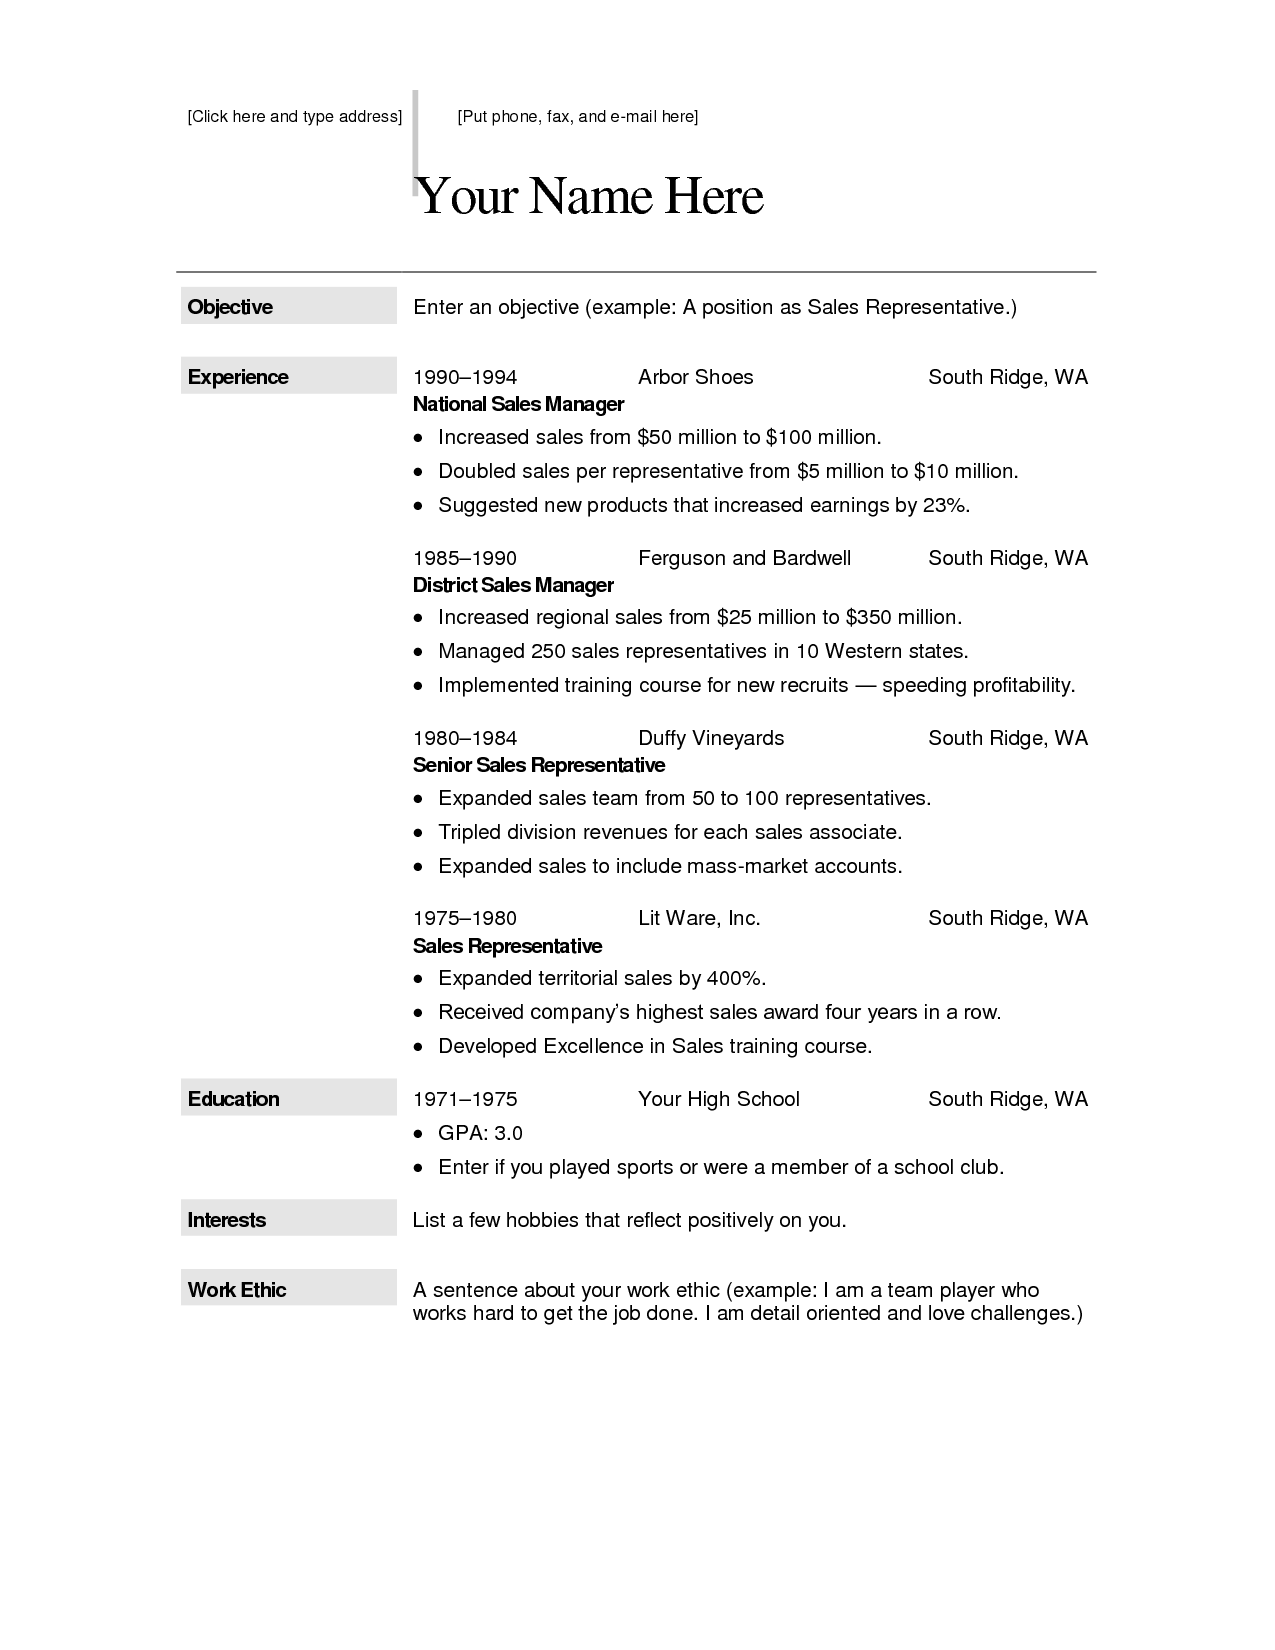 Mac Word Resume Template Amusing Free Creative Resume Templates For Macfree Creative Resume